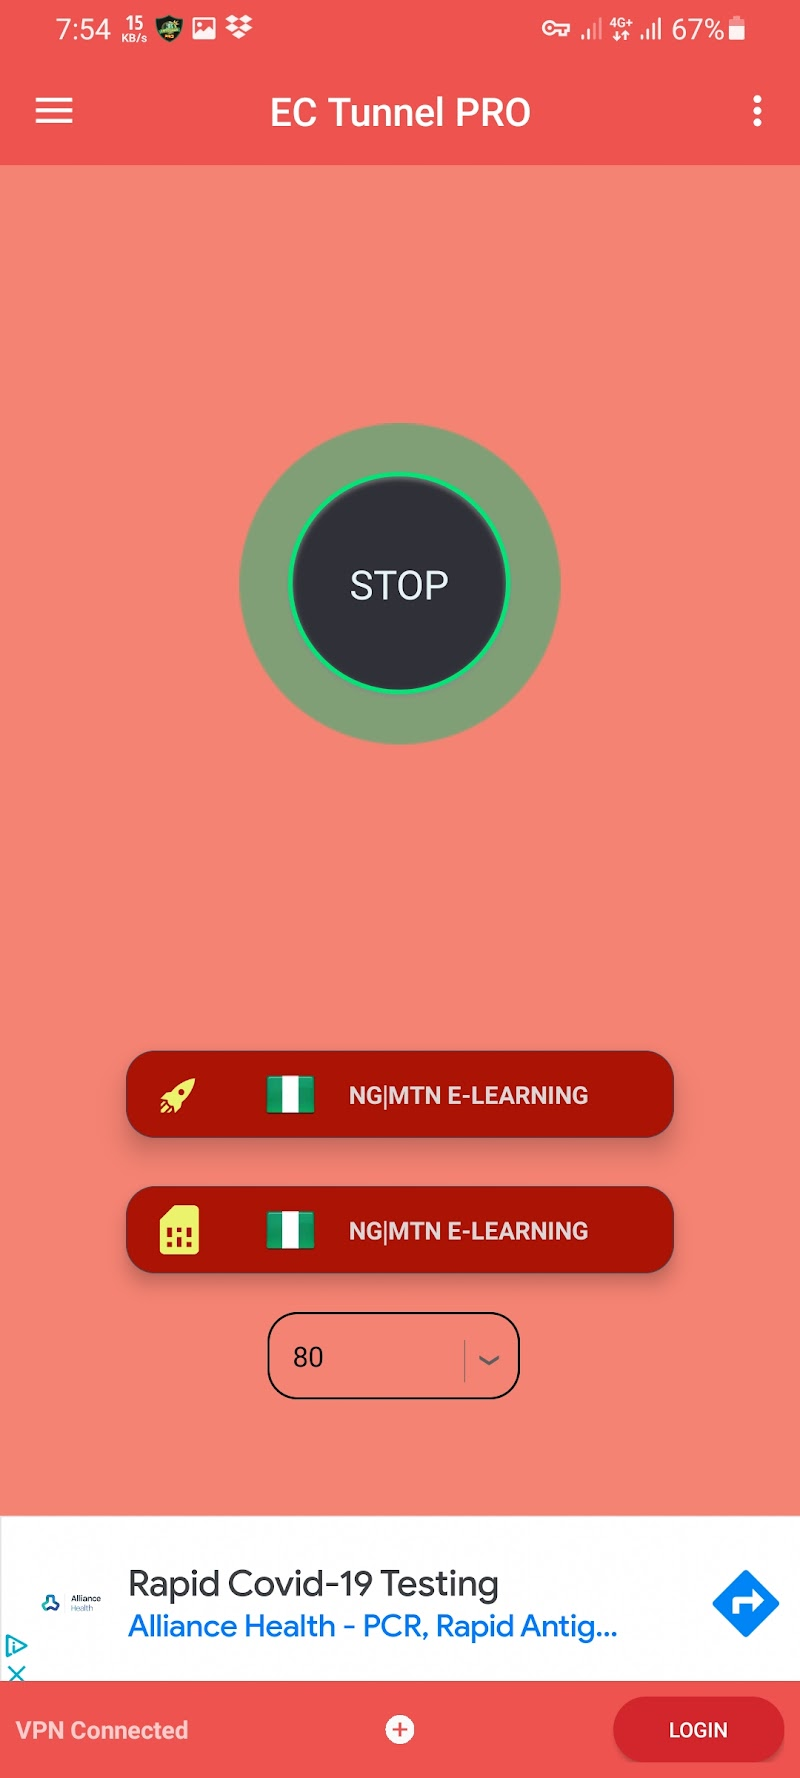 100% Working MTN NG Elearning 500MB Cheat For EC Tunnel PRO VPN